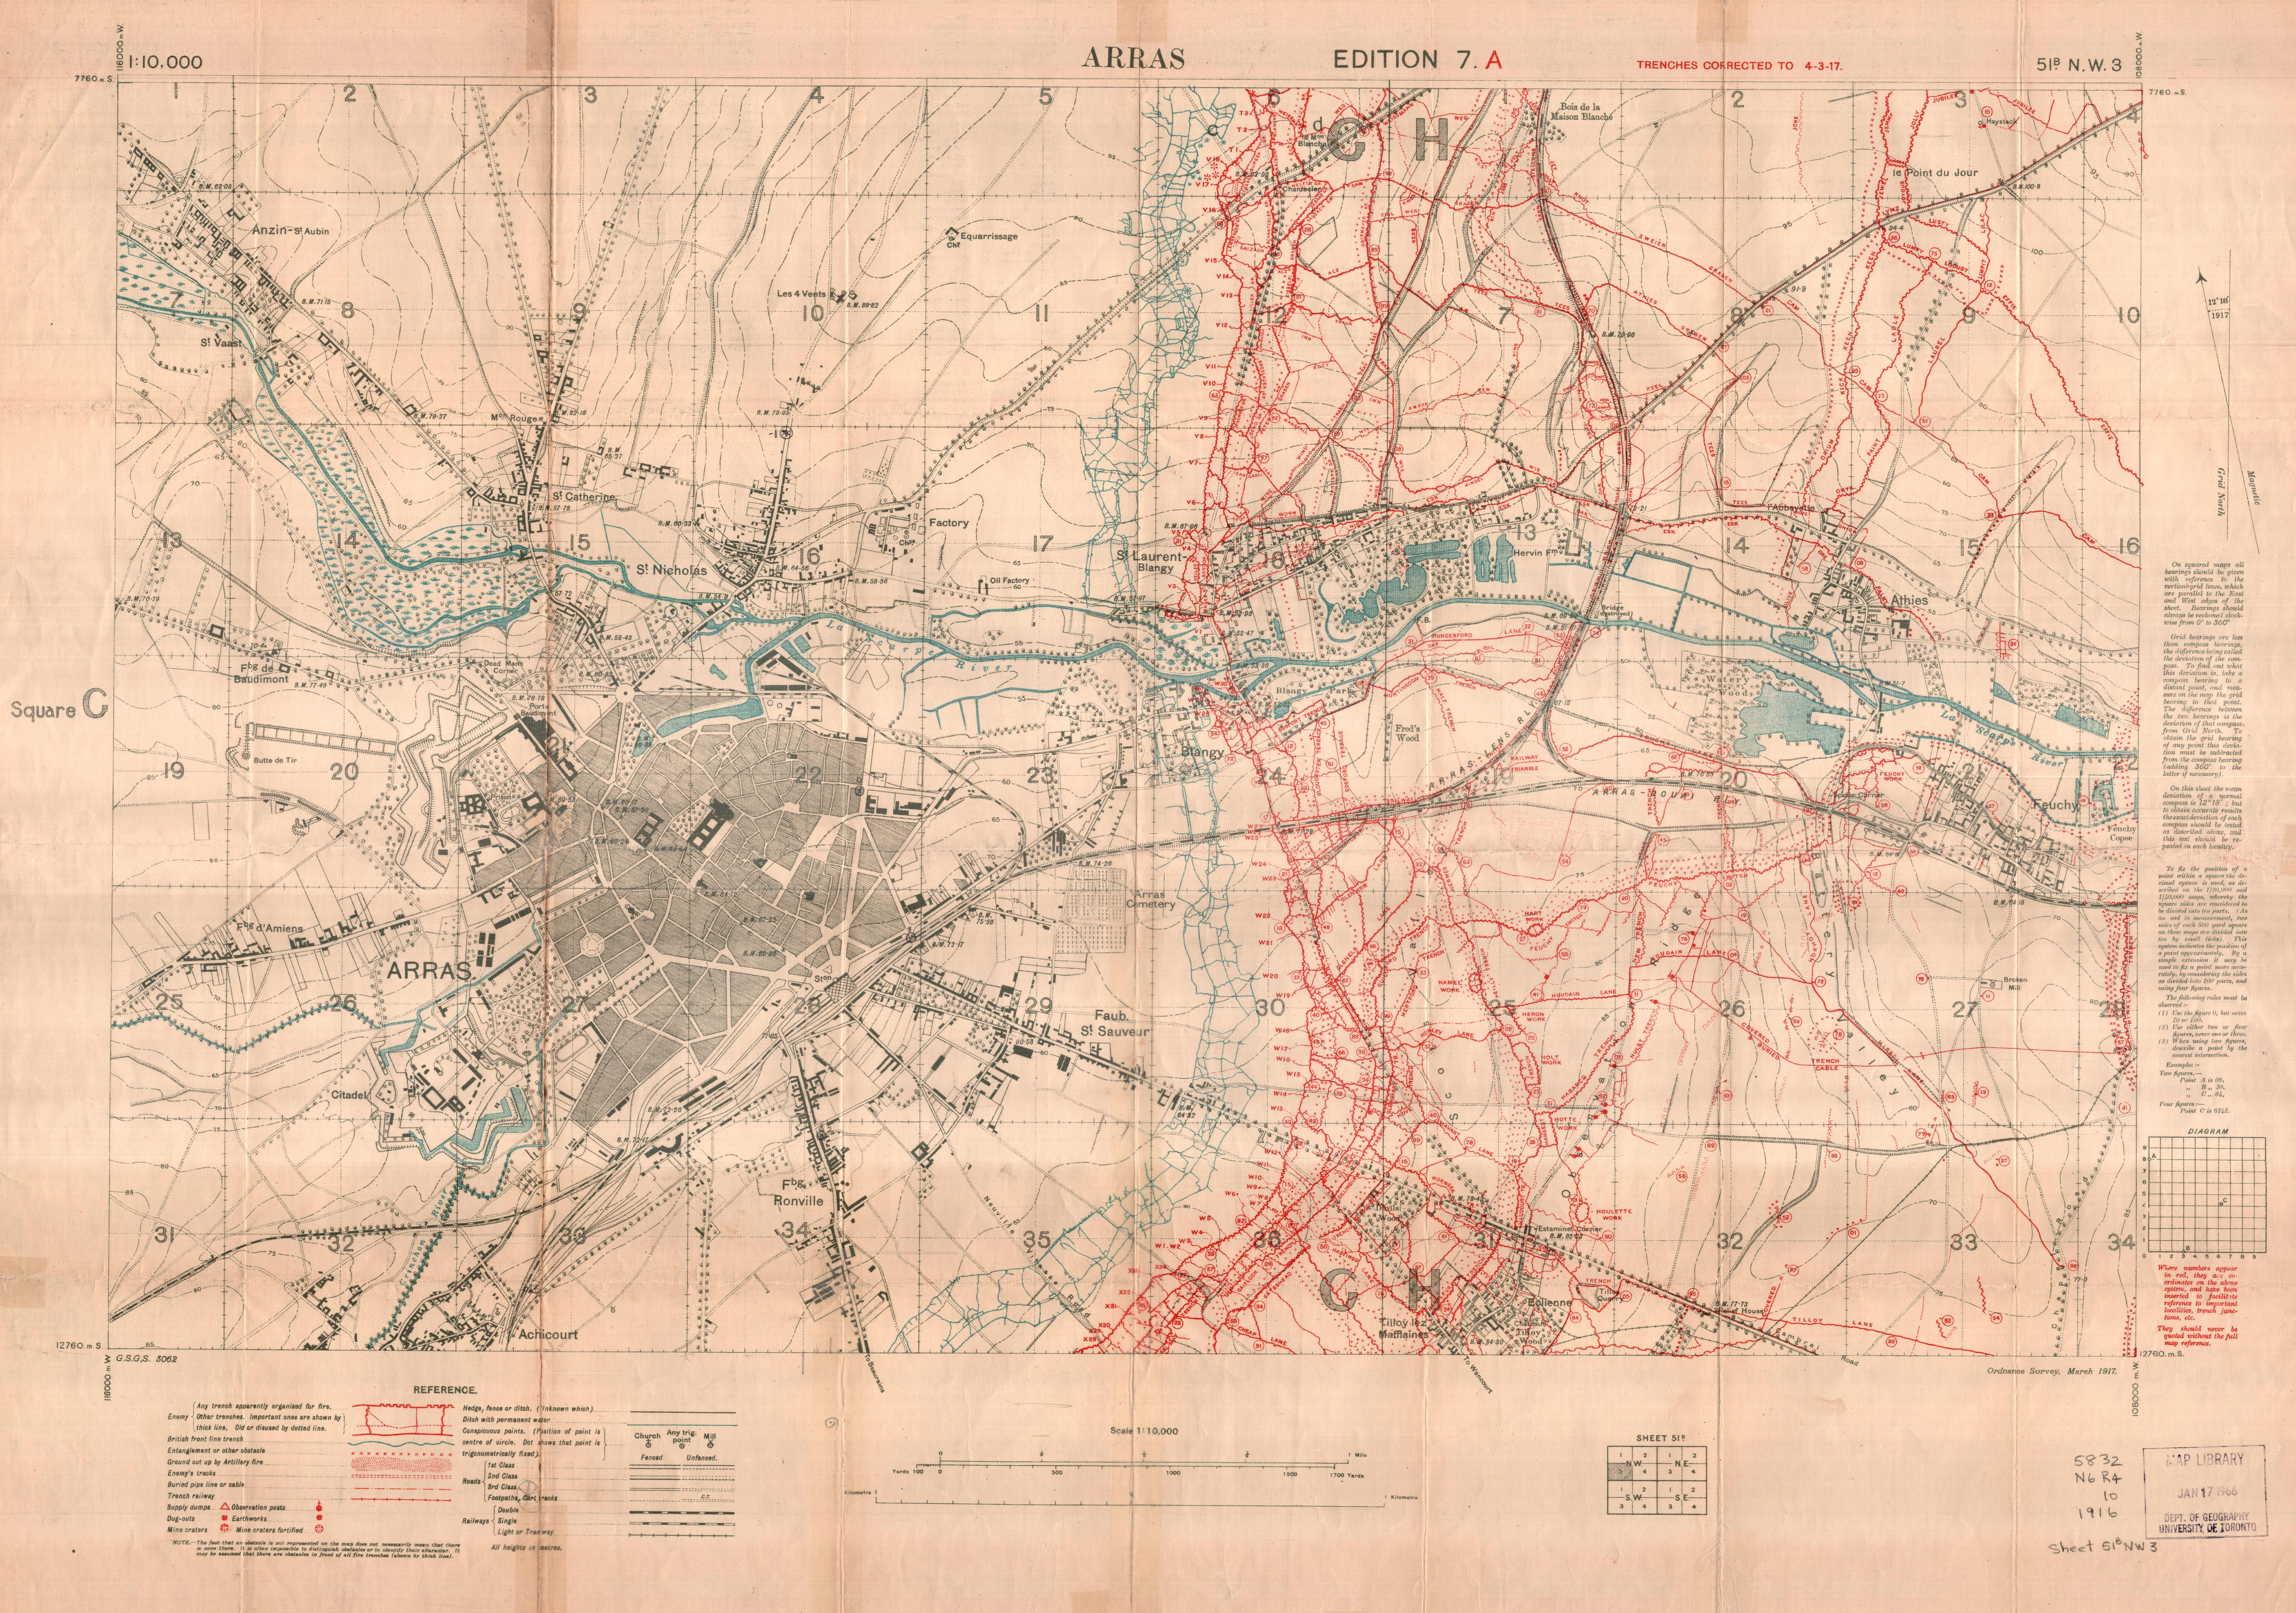 Trench map france map and data library 51b nw 3 7th ed gumiabroncs Images